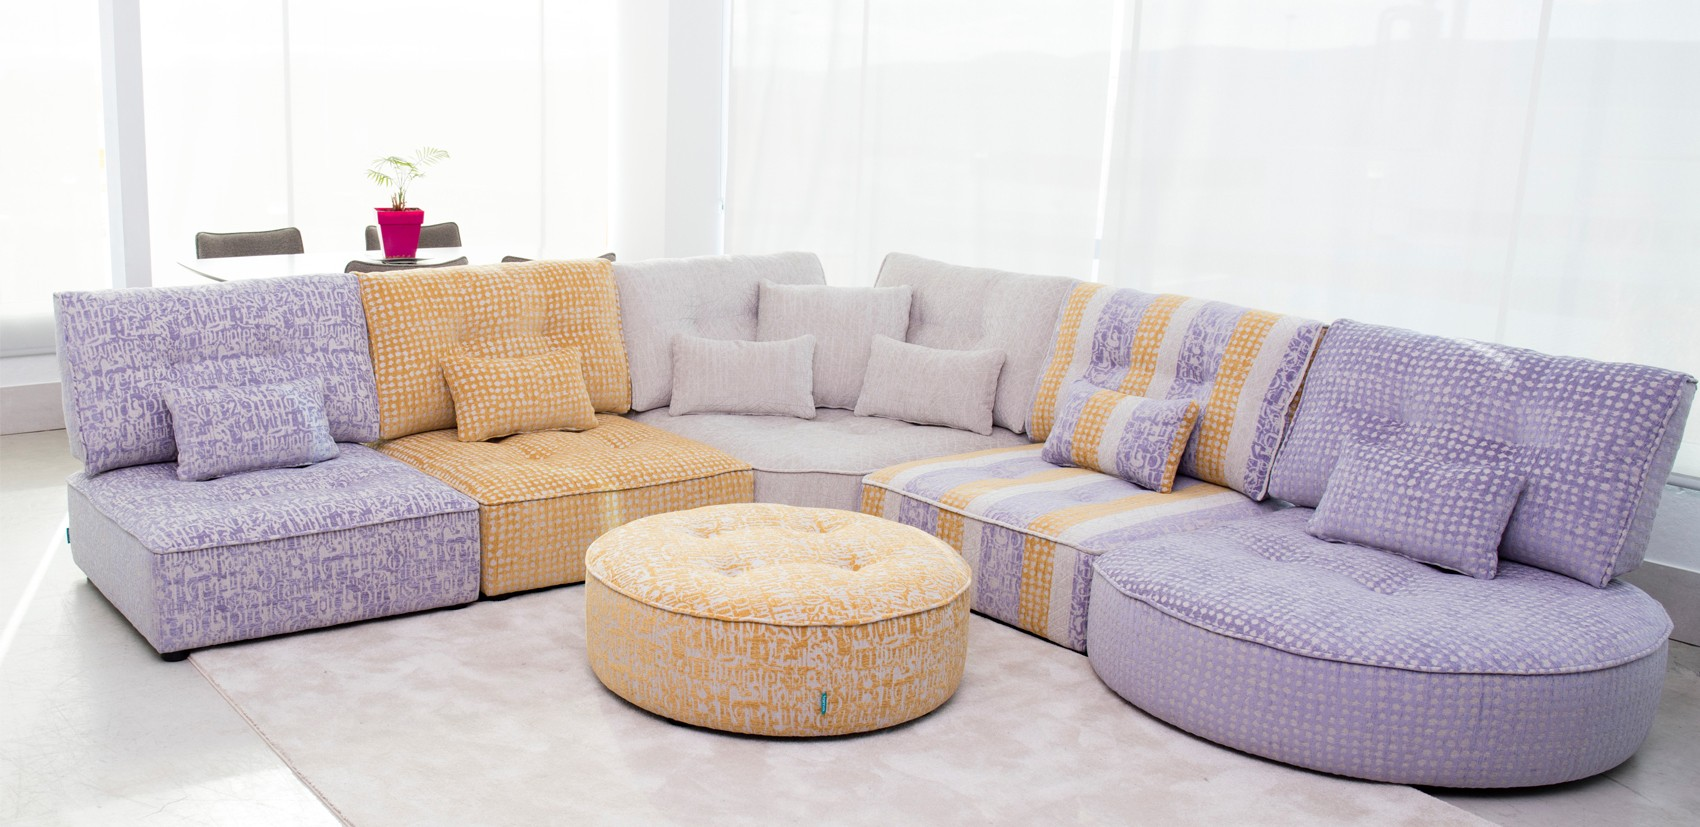 furniture-banner-254